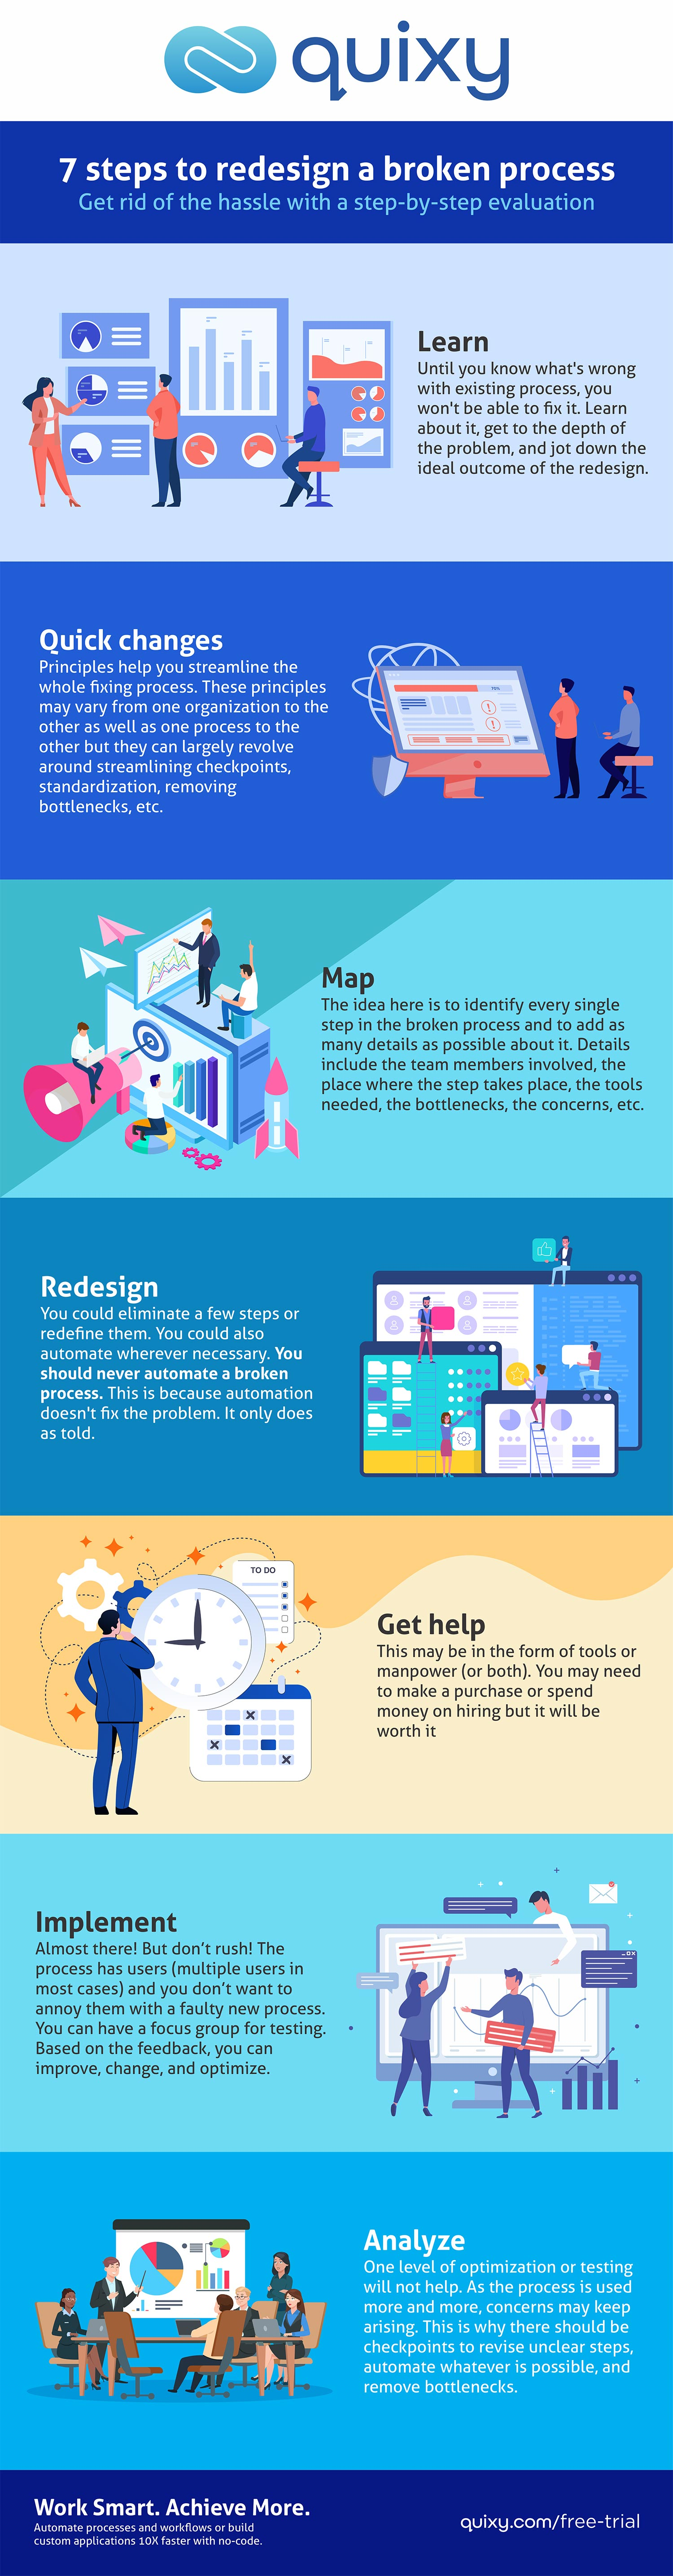 7 steps to redesign a broken process Infographic 1